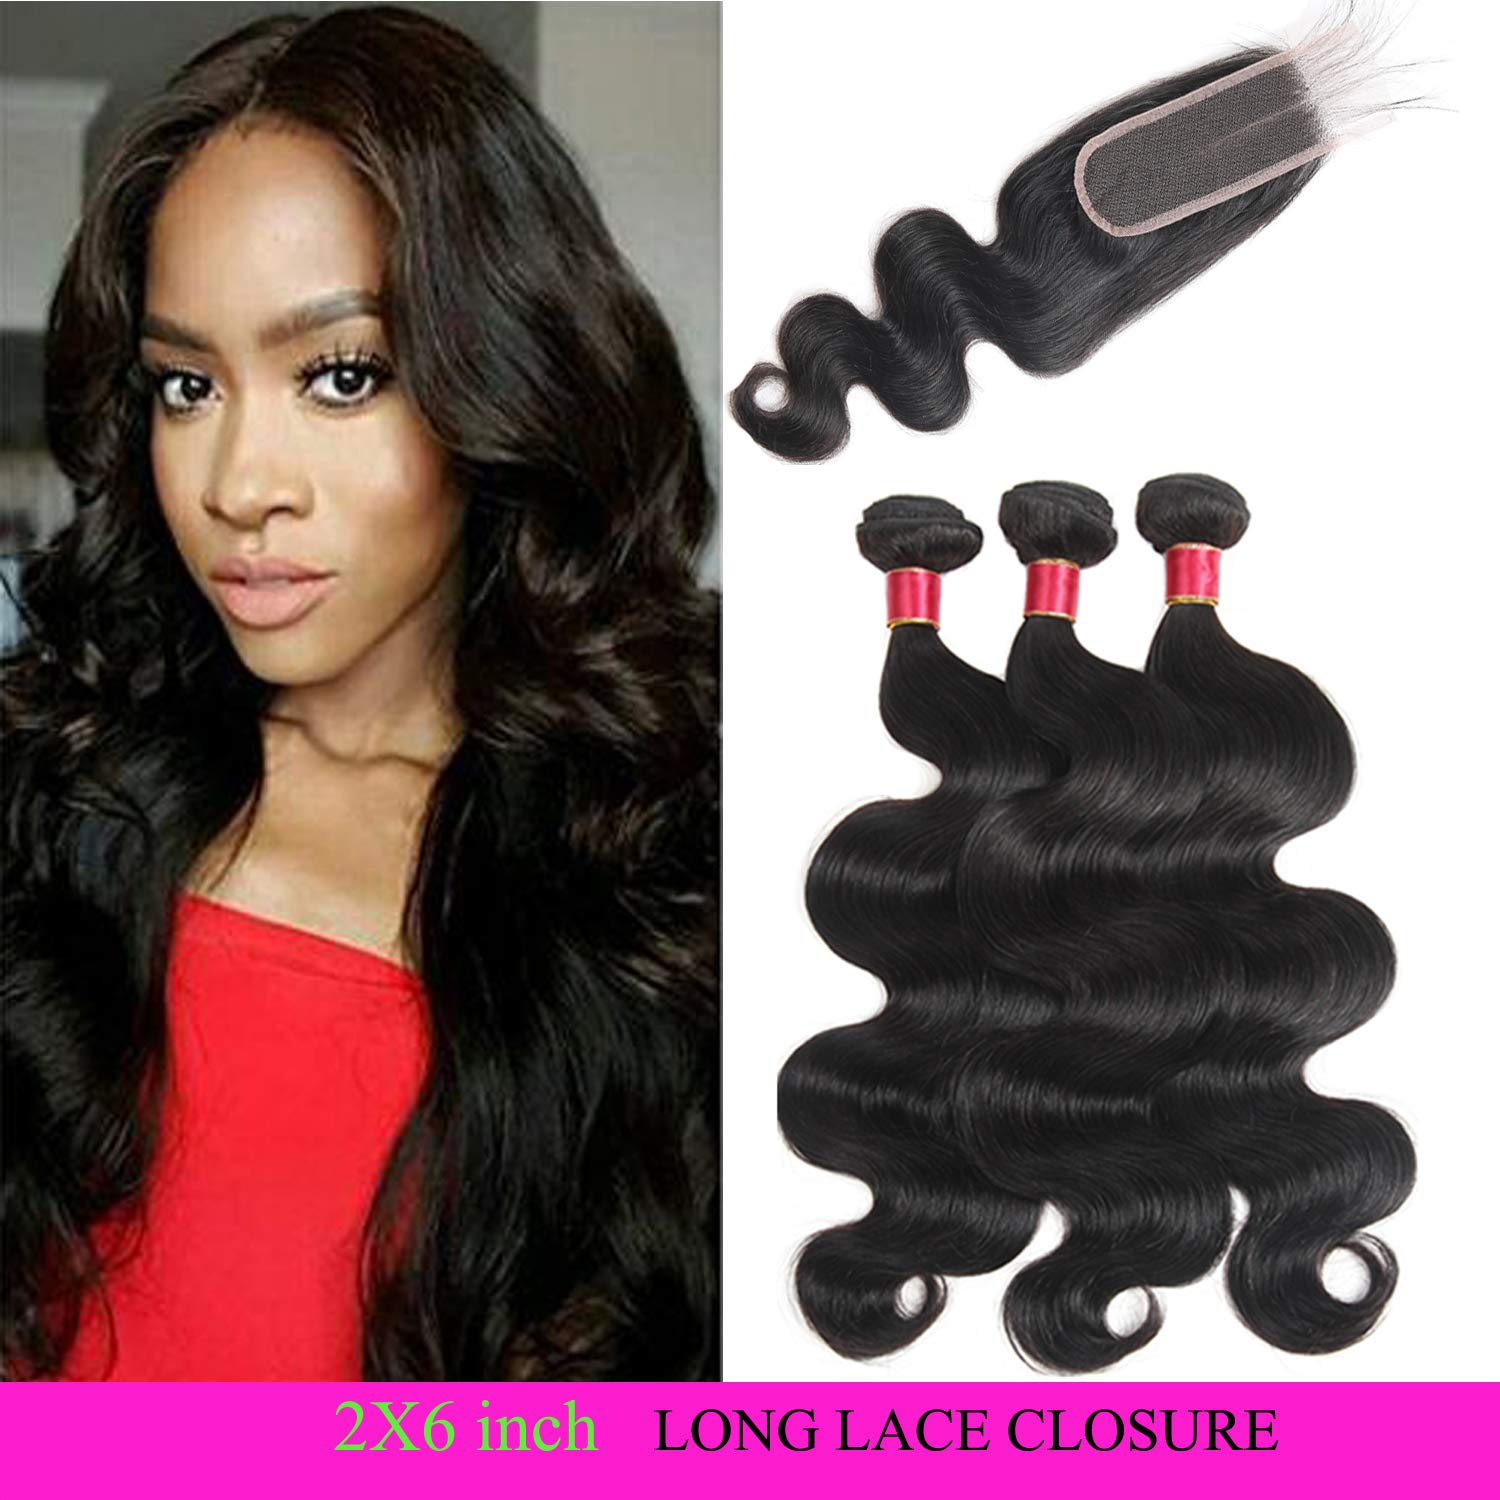 10A Brazilian Virgin Hair Body Wave 3 Bundles with Closure 3 Part Human Hair Bundles with Closure 8 Inch Human Hair Extensions Natural Color 50g/pcs 8 8 8 with 8 Three Part Lace Closure Fine Plus